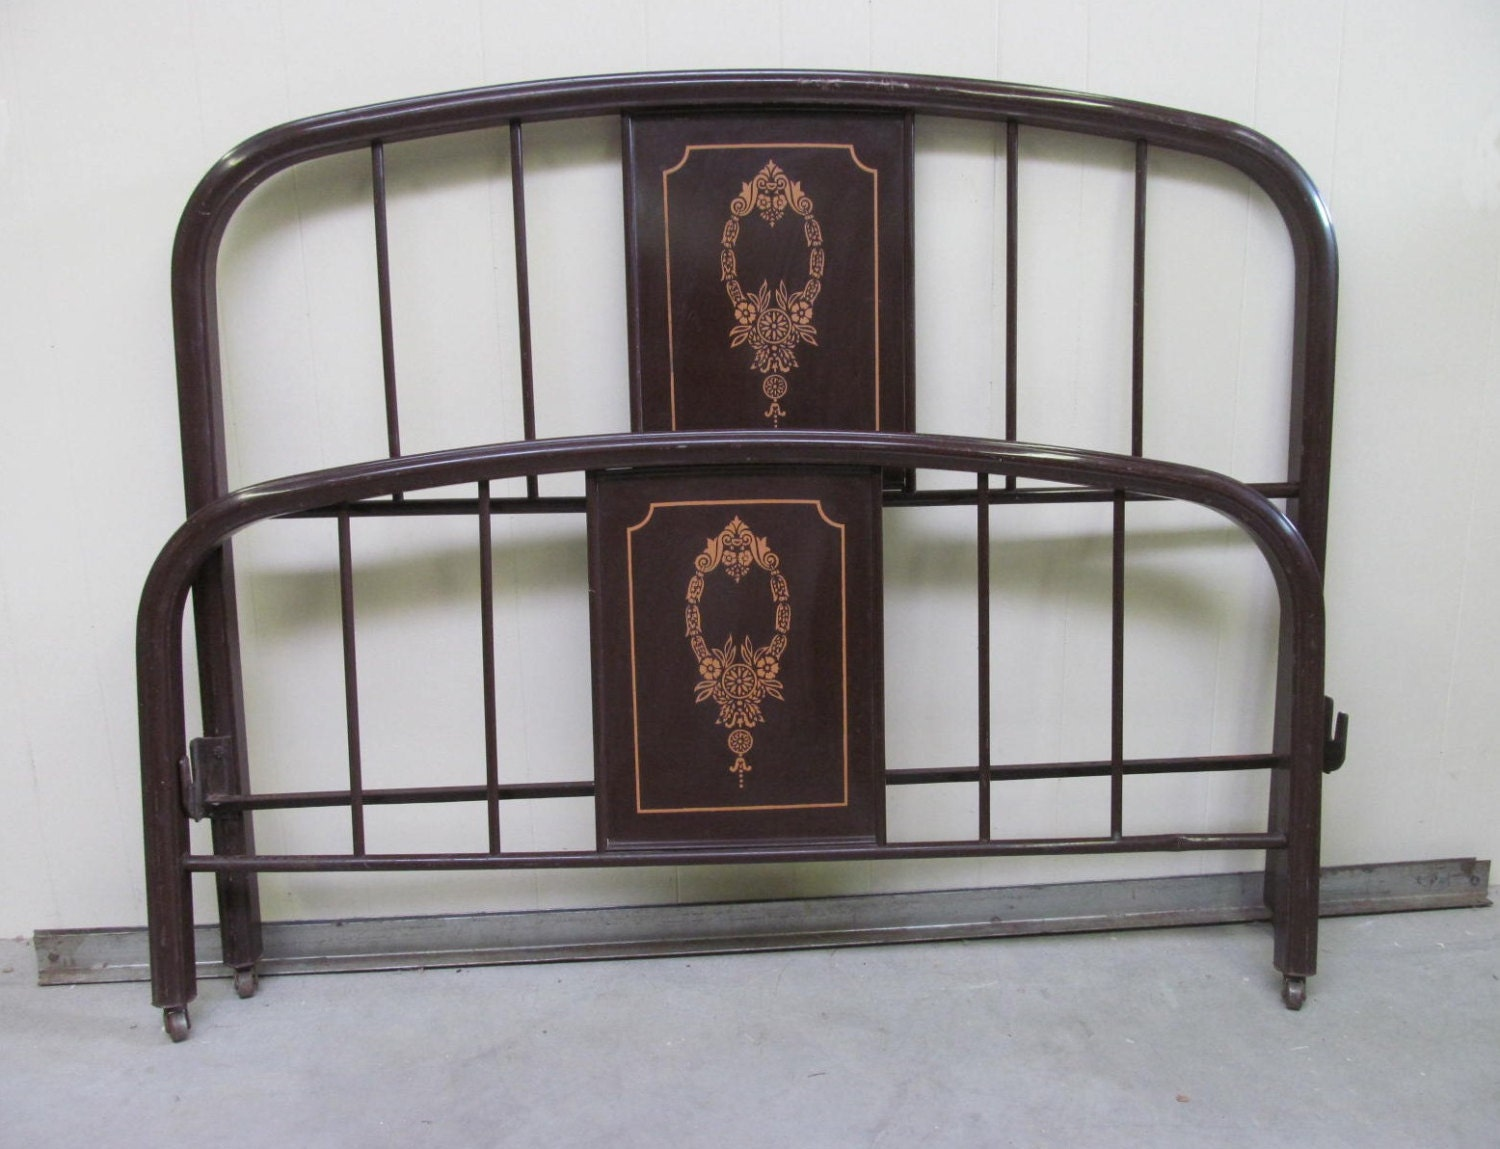 vintage 1920s painted metal bed frame full by ranchqueenvintage. Black Bedroom Furniture Sets. Home Design Ideas